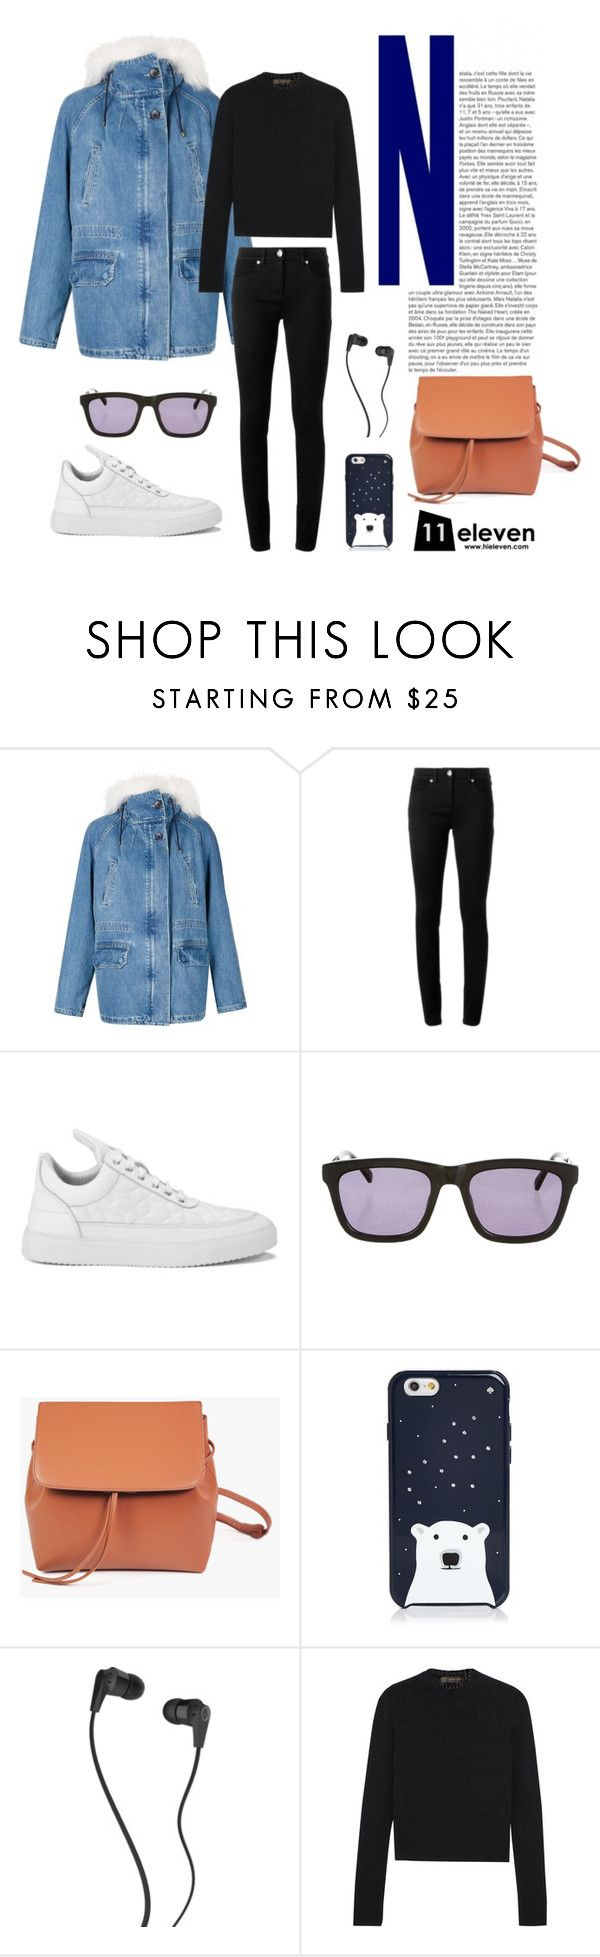 """Fur Trimmed Denim Parka × White Low Top Sneakers"" by hielevencom ❤ liked on Polyvore featuring Yves Salomon, Versace, Filling Pieces, Karen Walker, Kate Spade, Skullcandy, women's clothing, women's fashion, women and female"